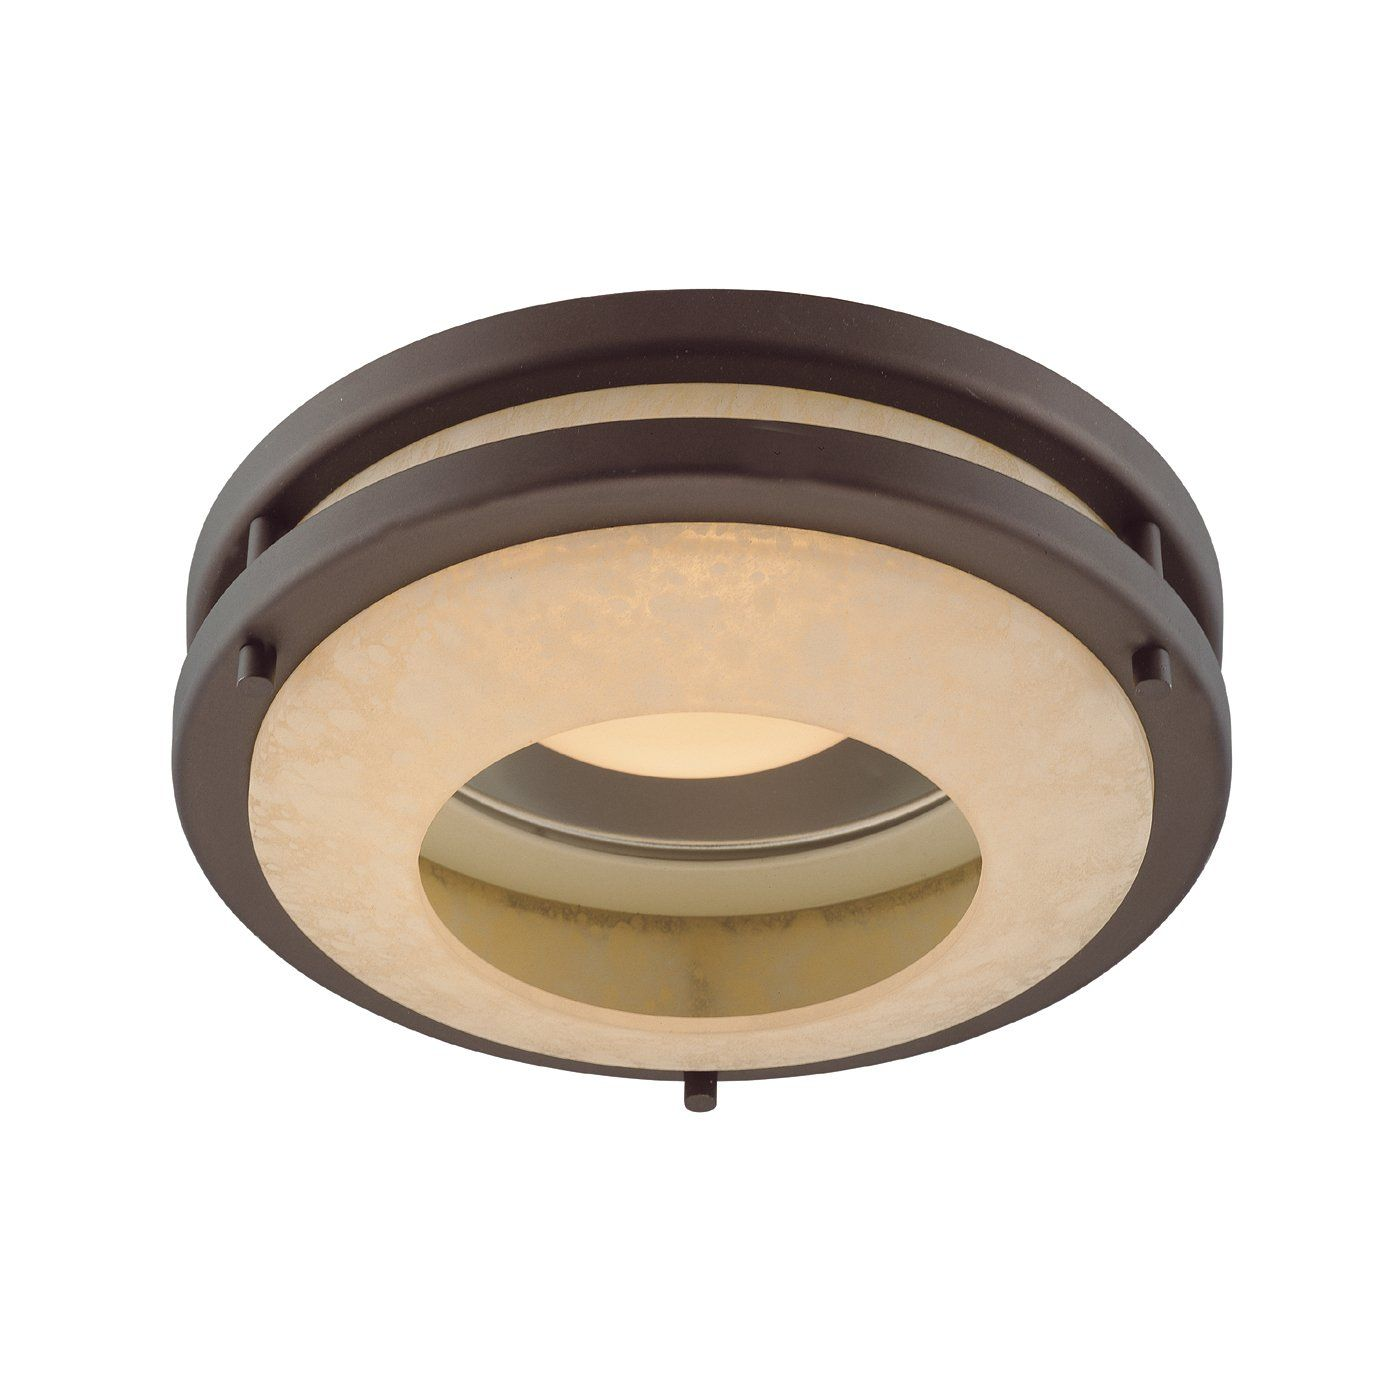 Thomas Lighting TRD601BR 6in Decorative Recessed Lighting Trim